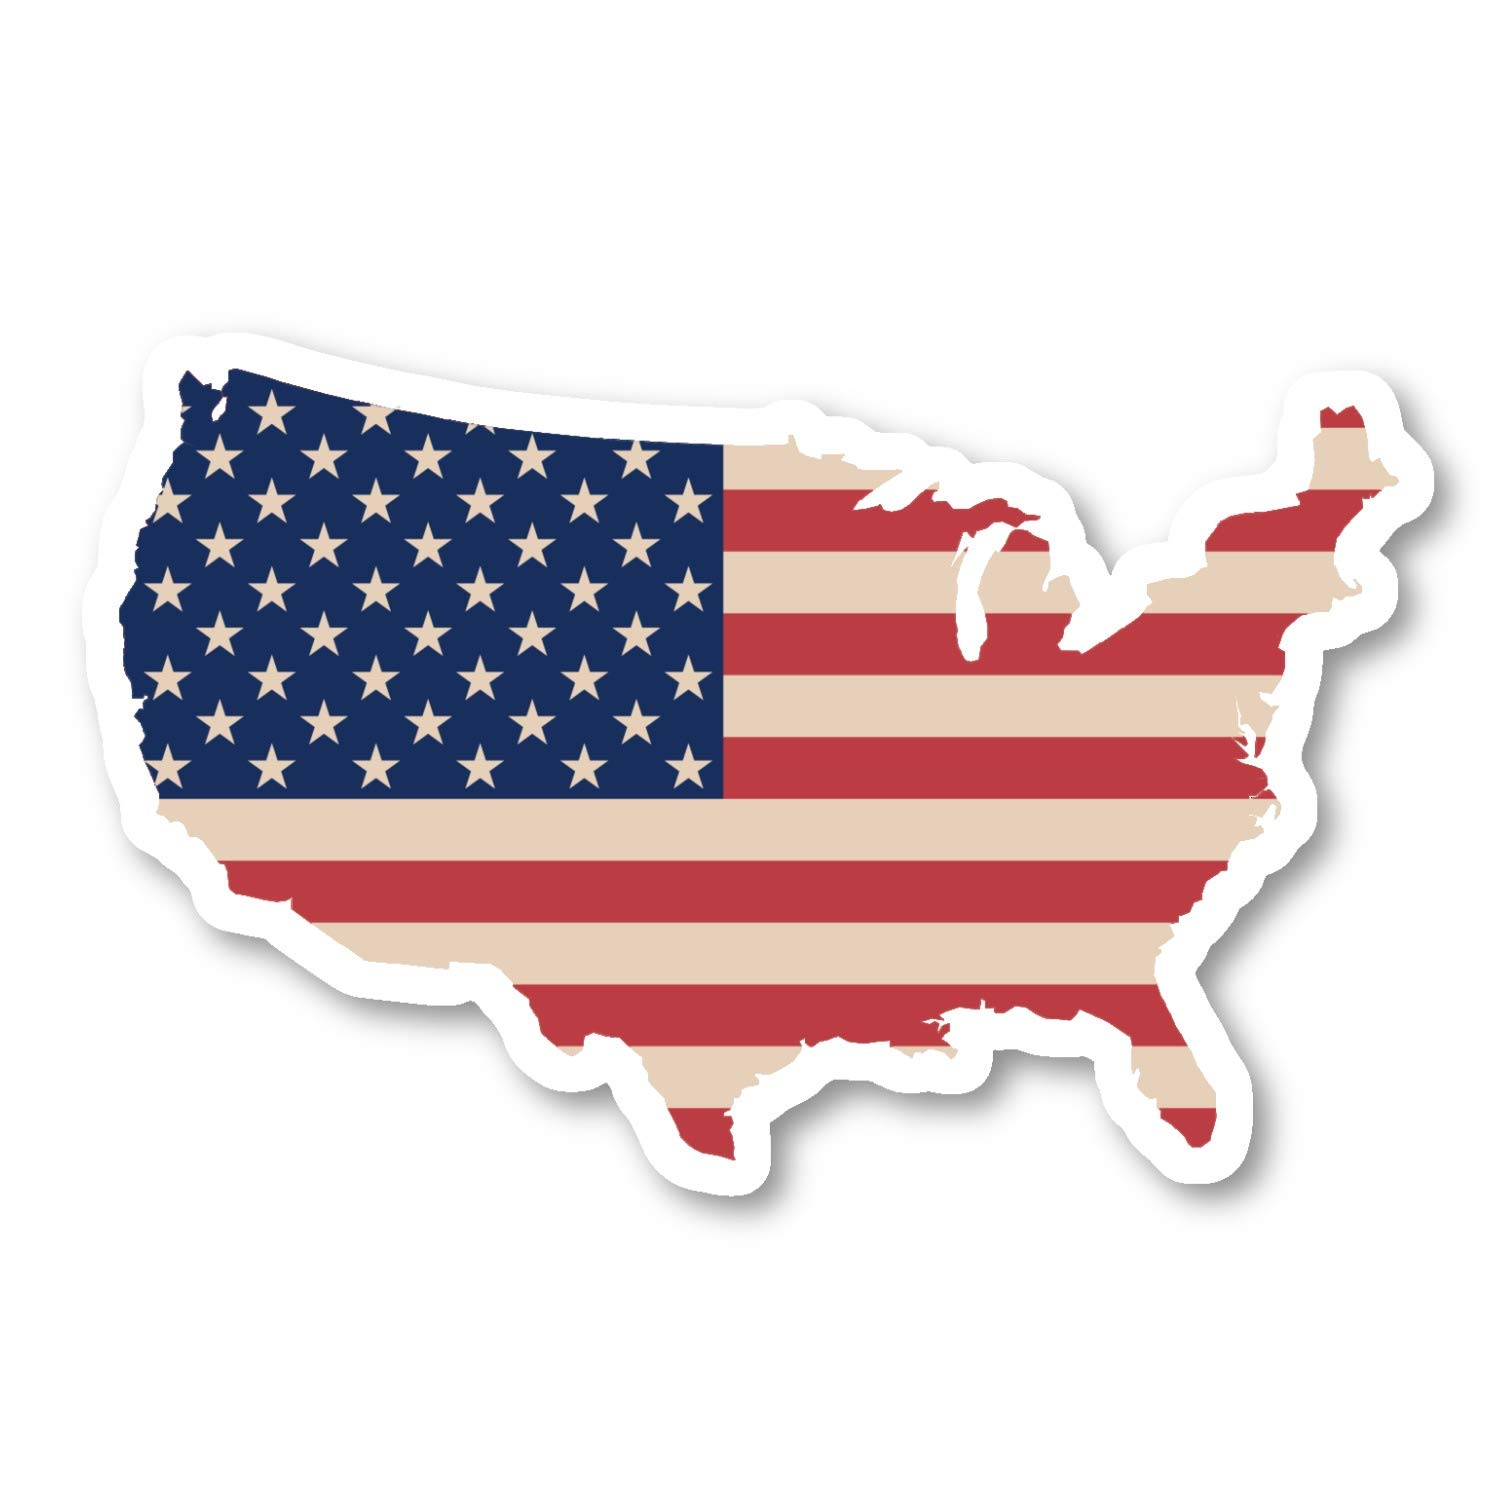 USA United States Map Flag Sticker Flags Stickers - Laptop Stickers on calendar stickers, kentucky stickers, hawaii map stickers, usa patchwork map stickers, wyoming stickers, barbados map stickers, mississippi stickers, states visited maps stickers, north carolina stickers, united states state abbreviations,